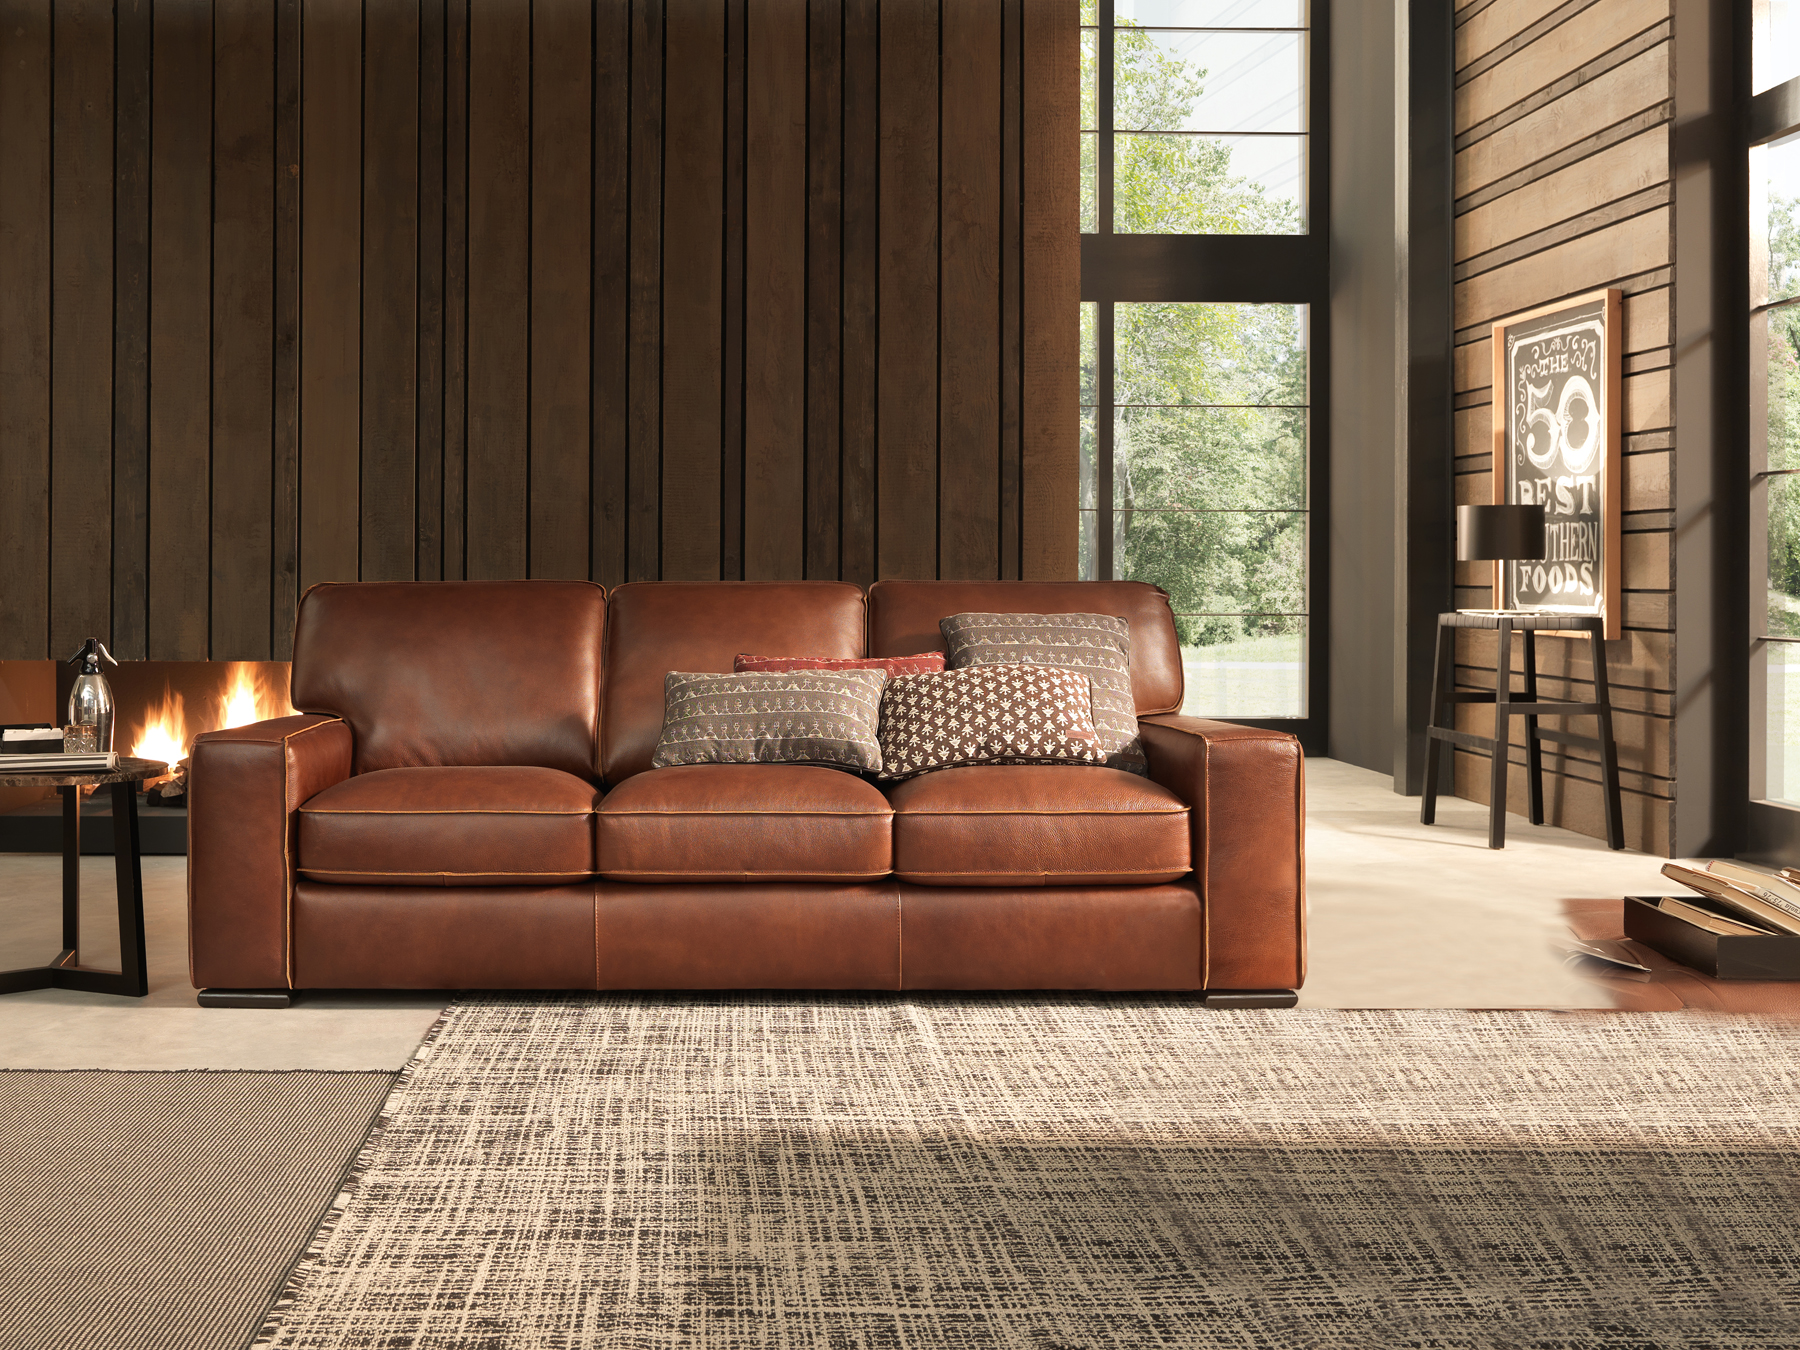 Leather Sofa Furniture Guide How To Avoid Common Mistakes